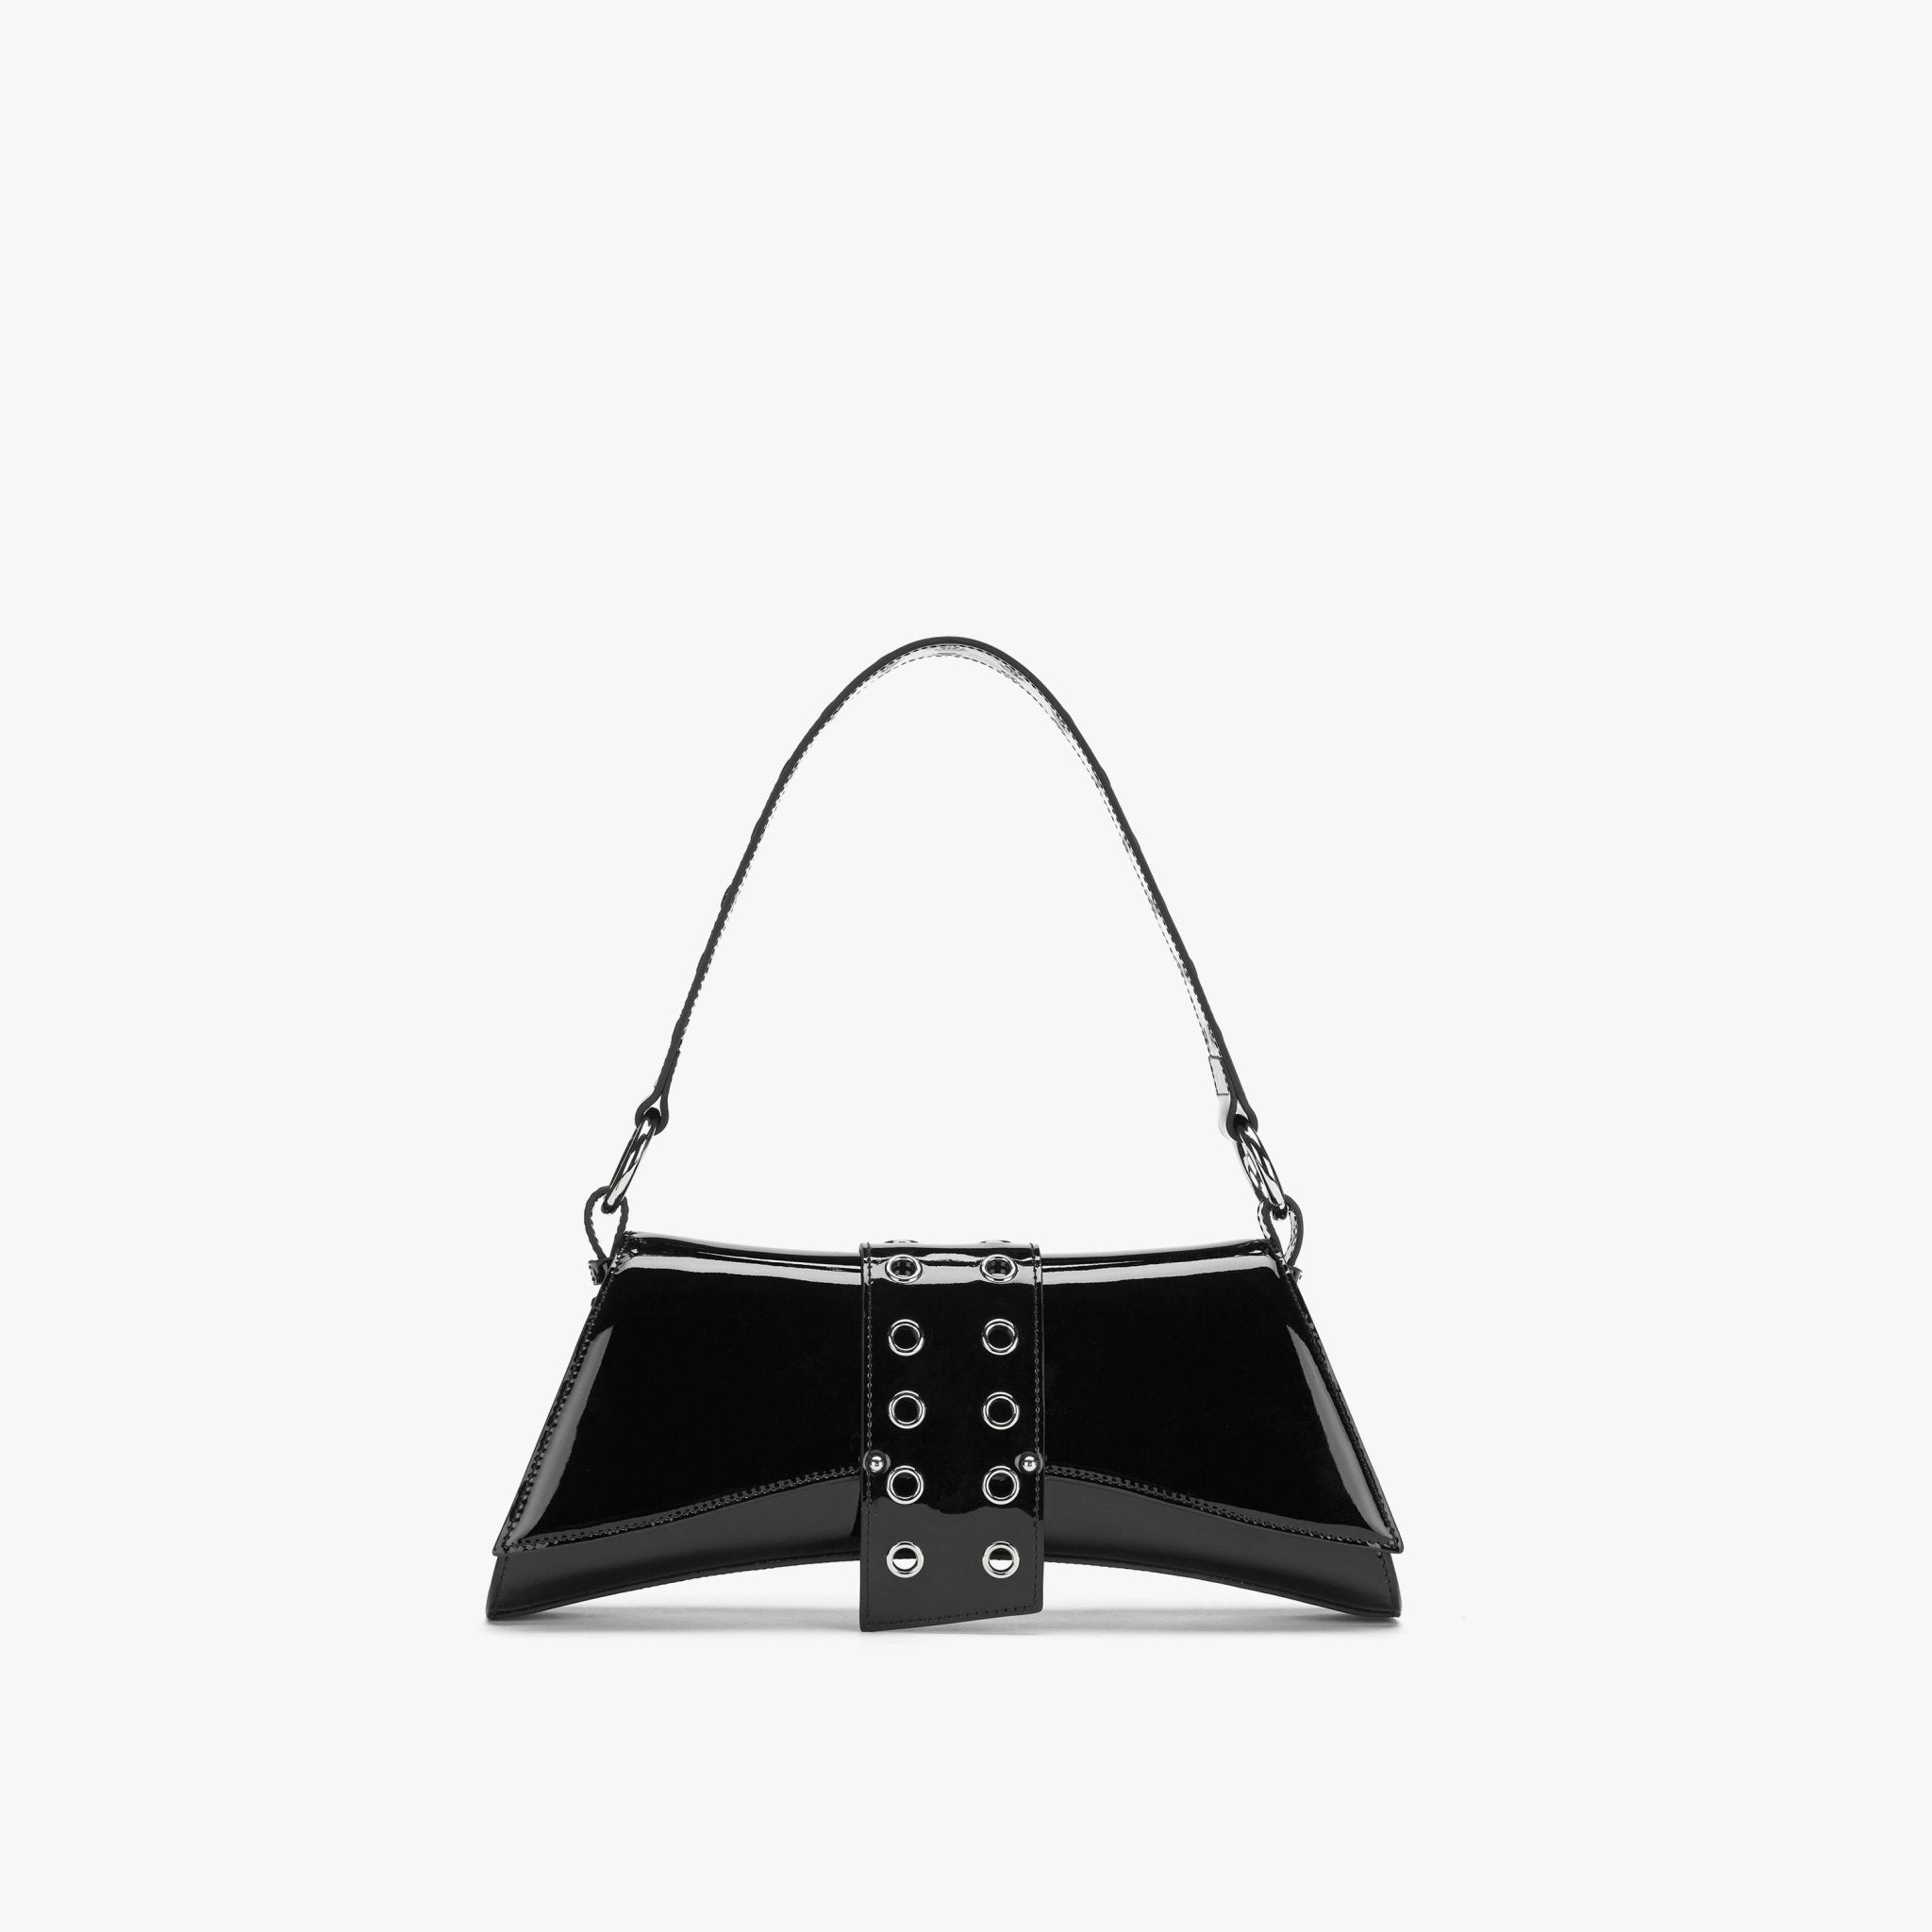 LOST IN ECHO Black Barrett Metail Chain Bag Large | MADA IN CHINA